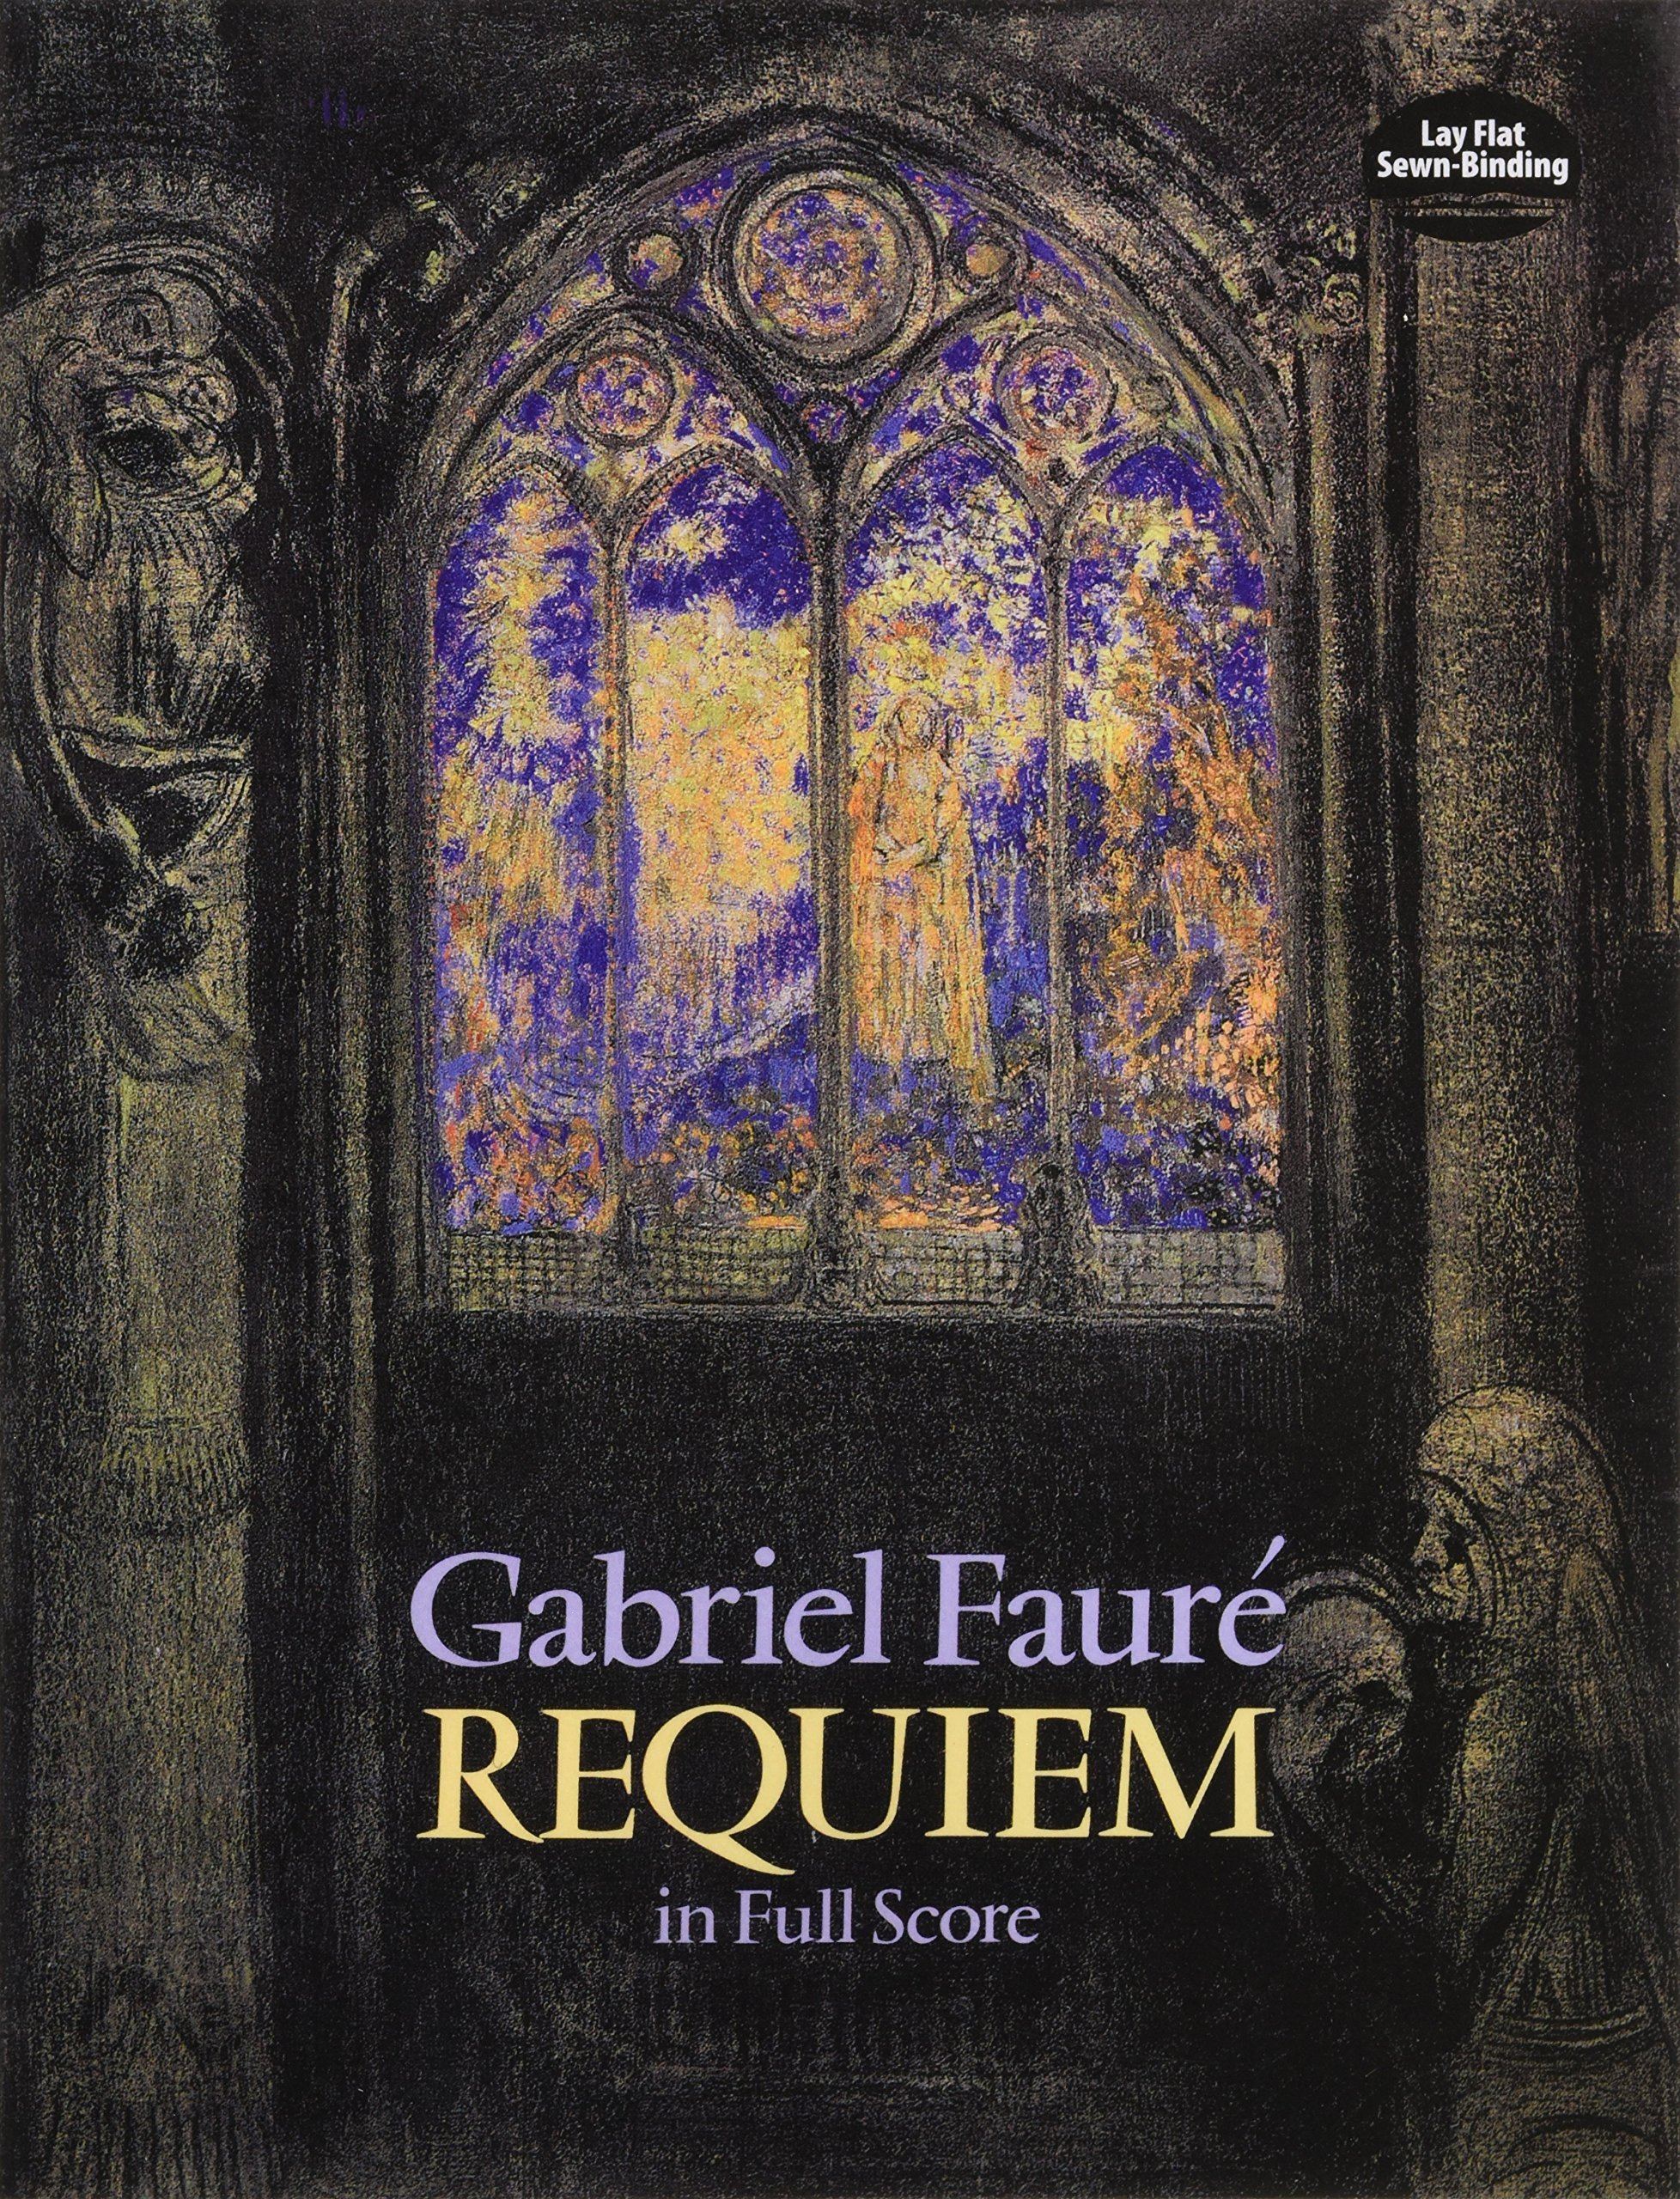 Requiem in Full Score (Dover Music Scores): Gabriel Fauré: 9780486271552:  Amazon.com: Books